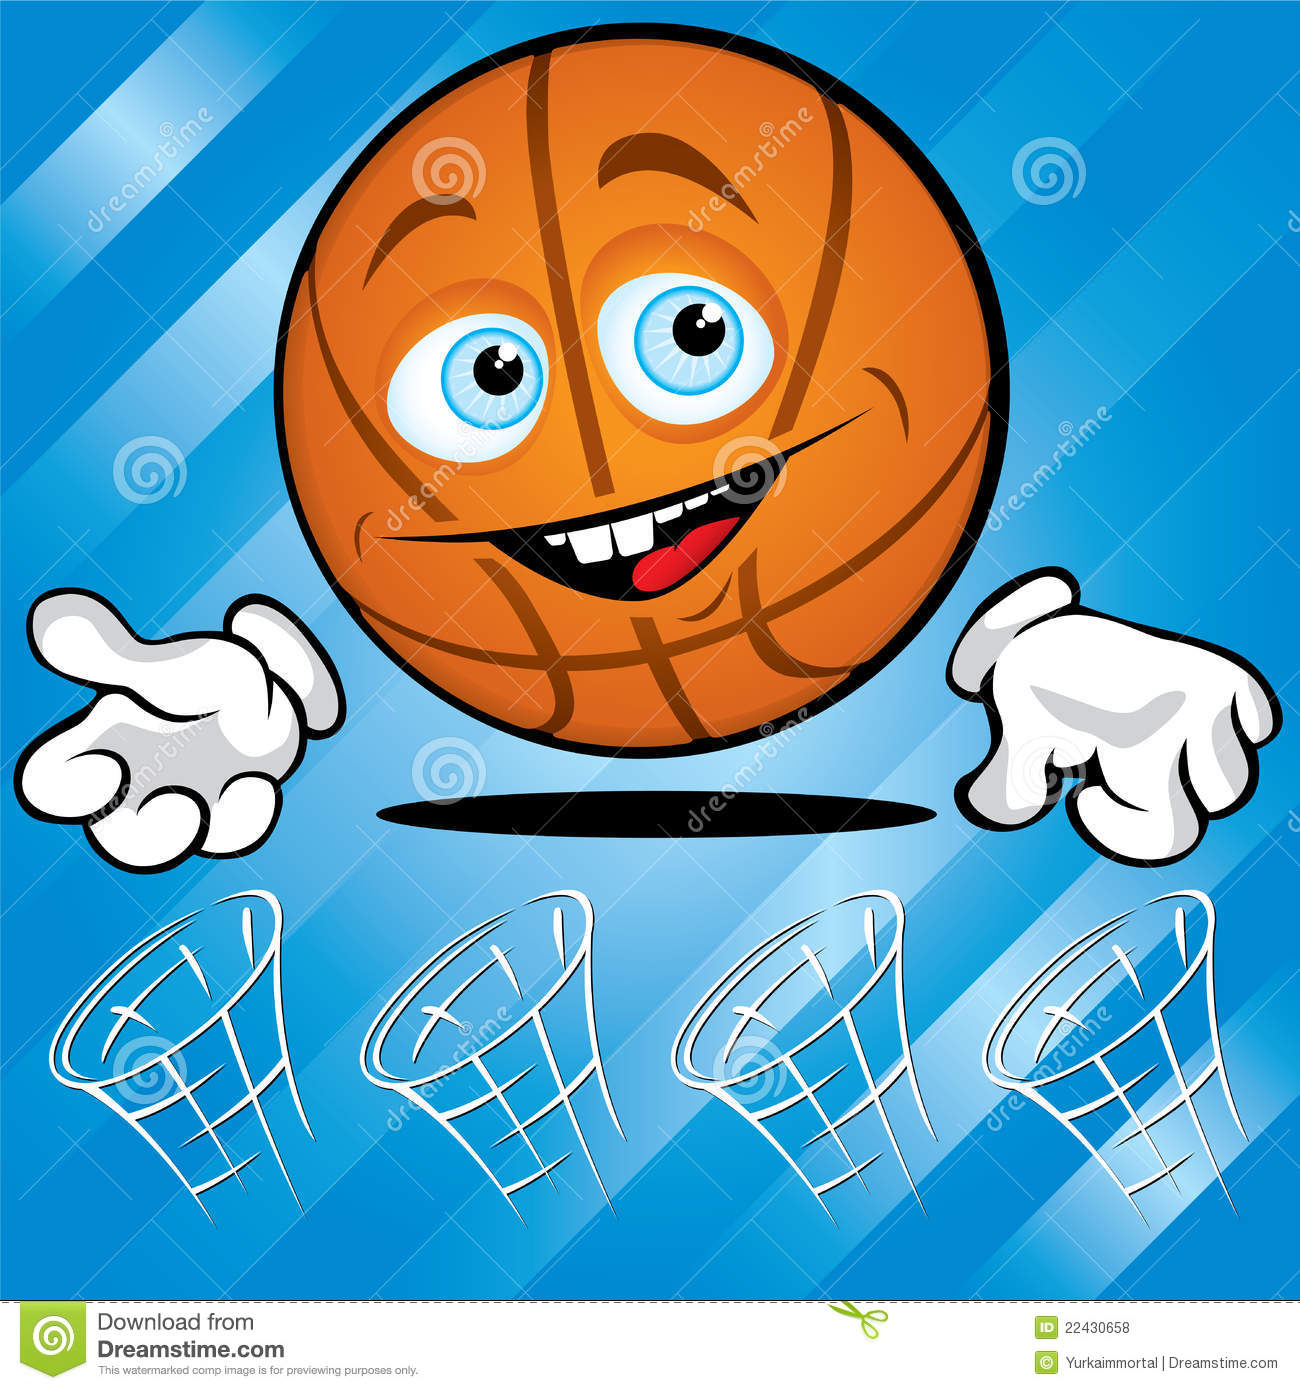 Funny Basketball Graphics 7 « Search Results « Black Models Picture